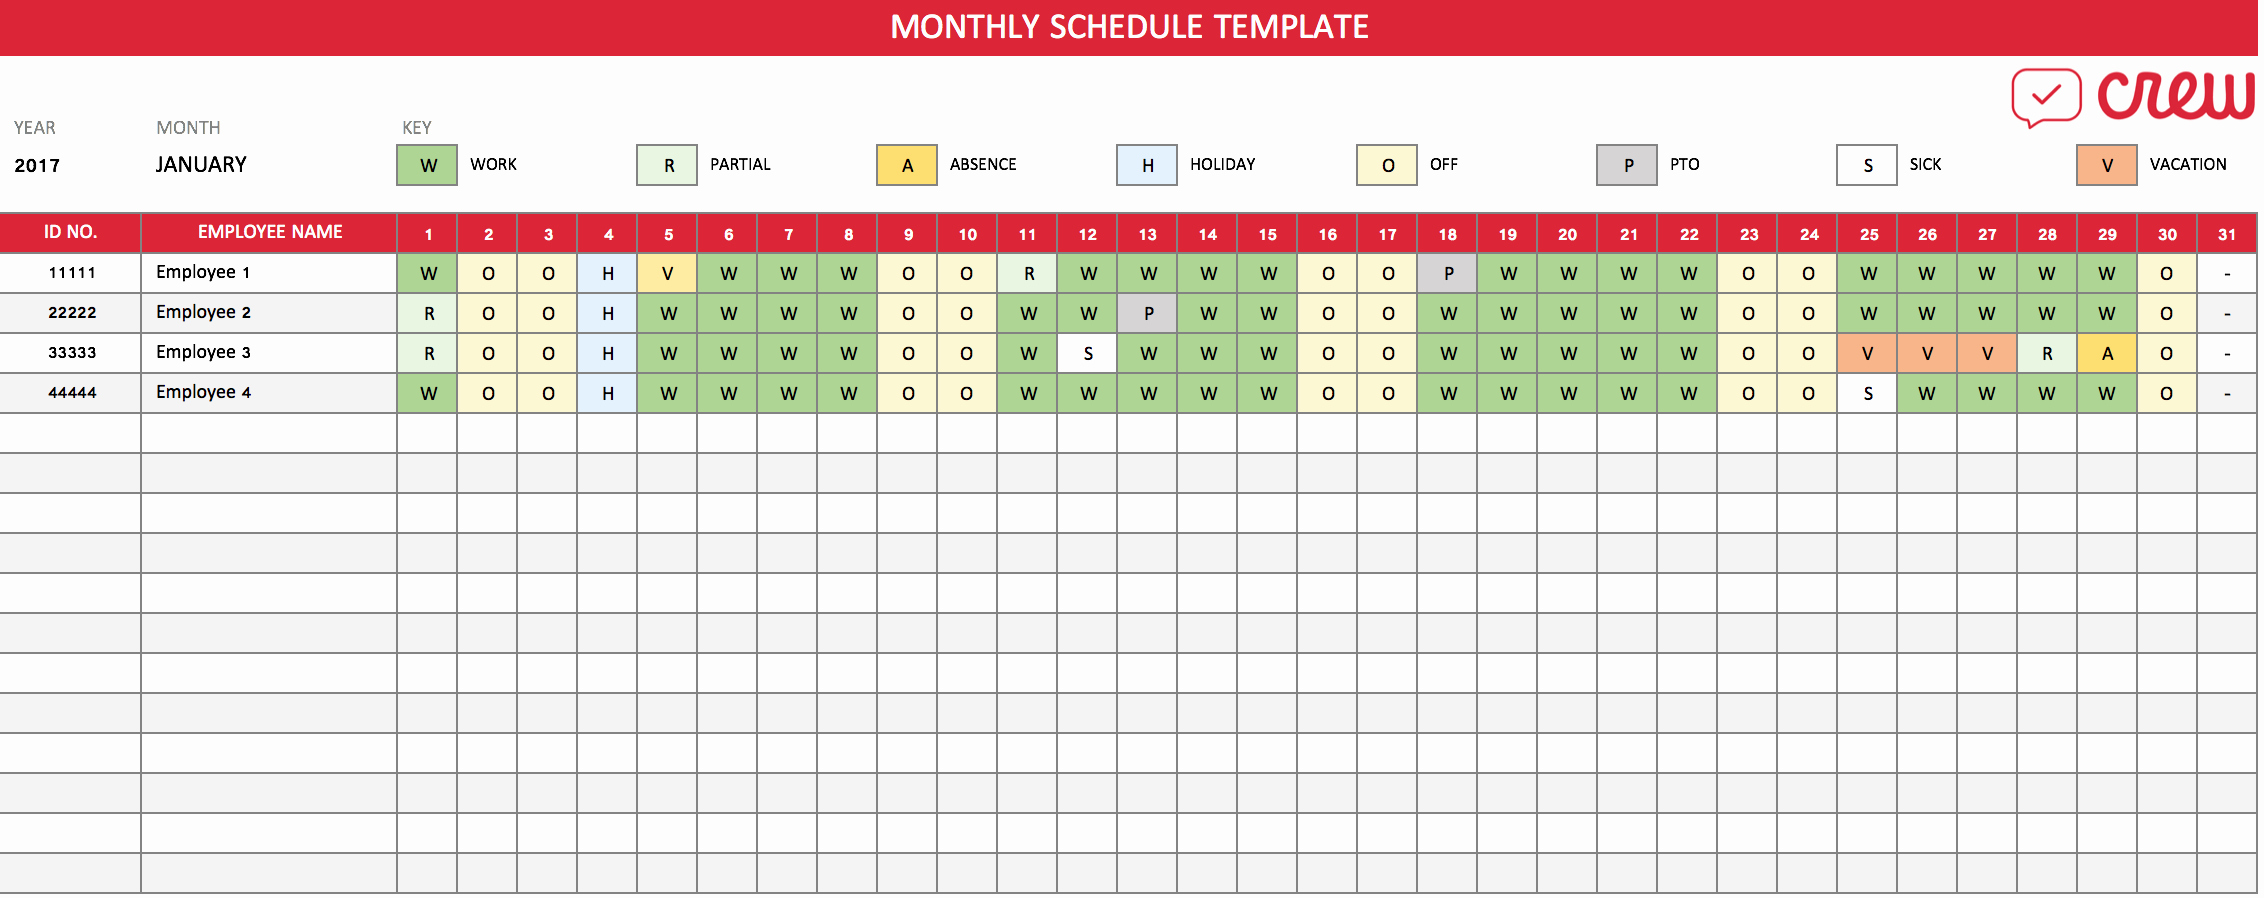 Monthly Employee Schedule Template Luxury Free Monthly Work Schedule Template Crew